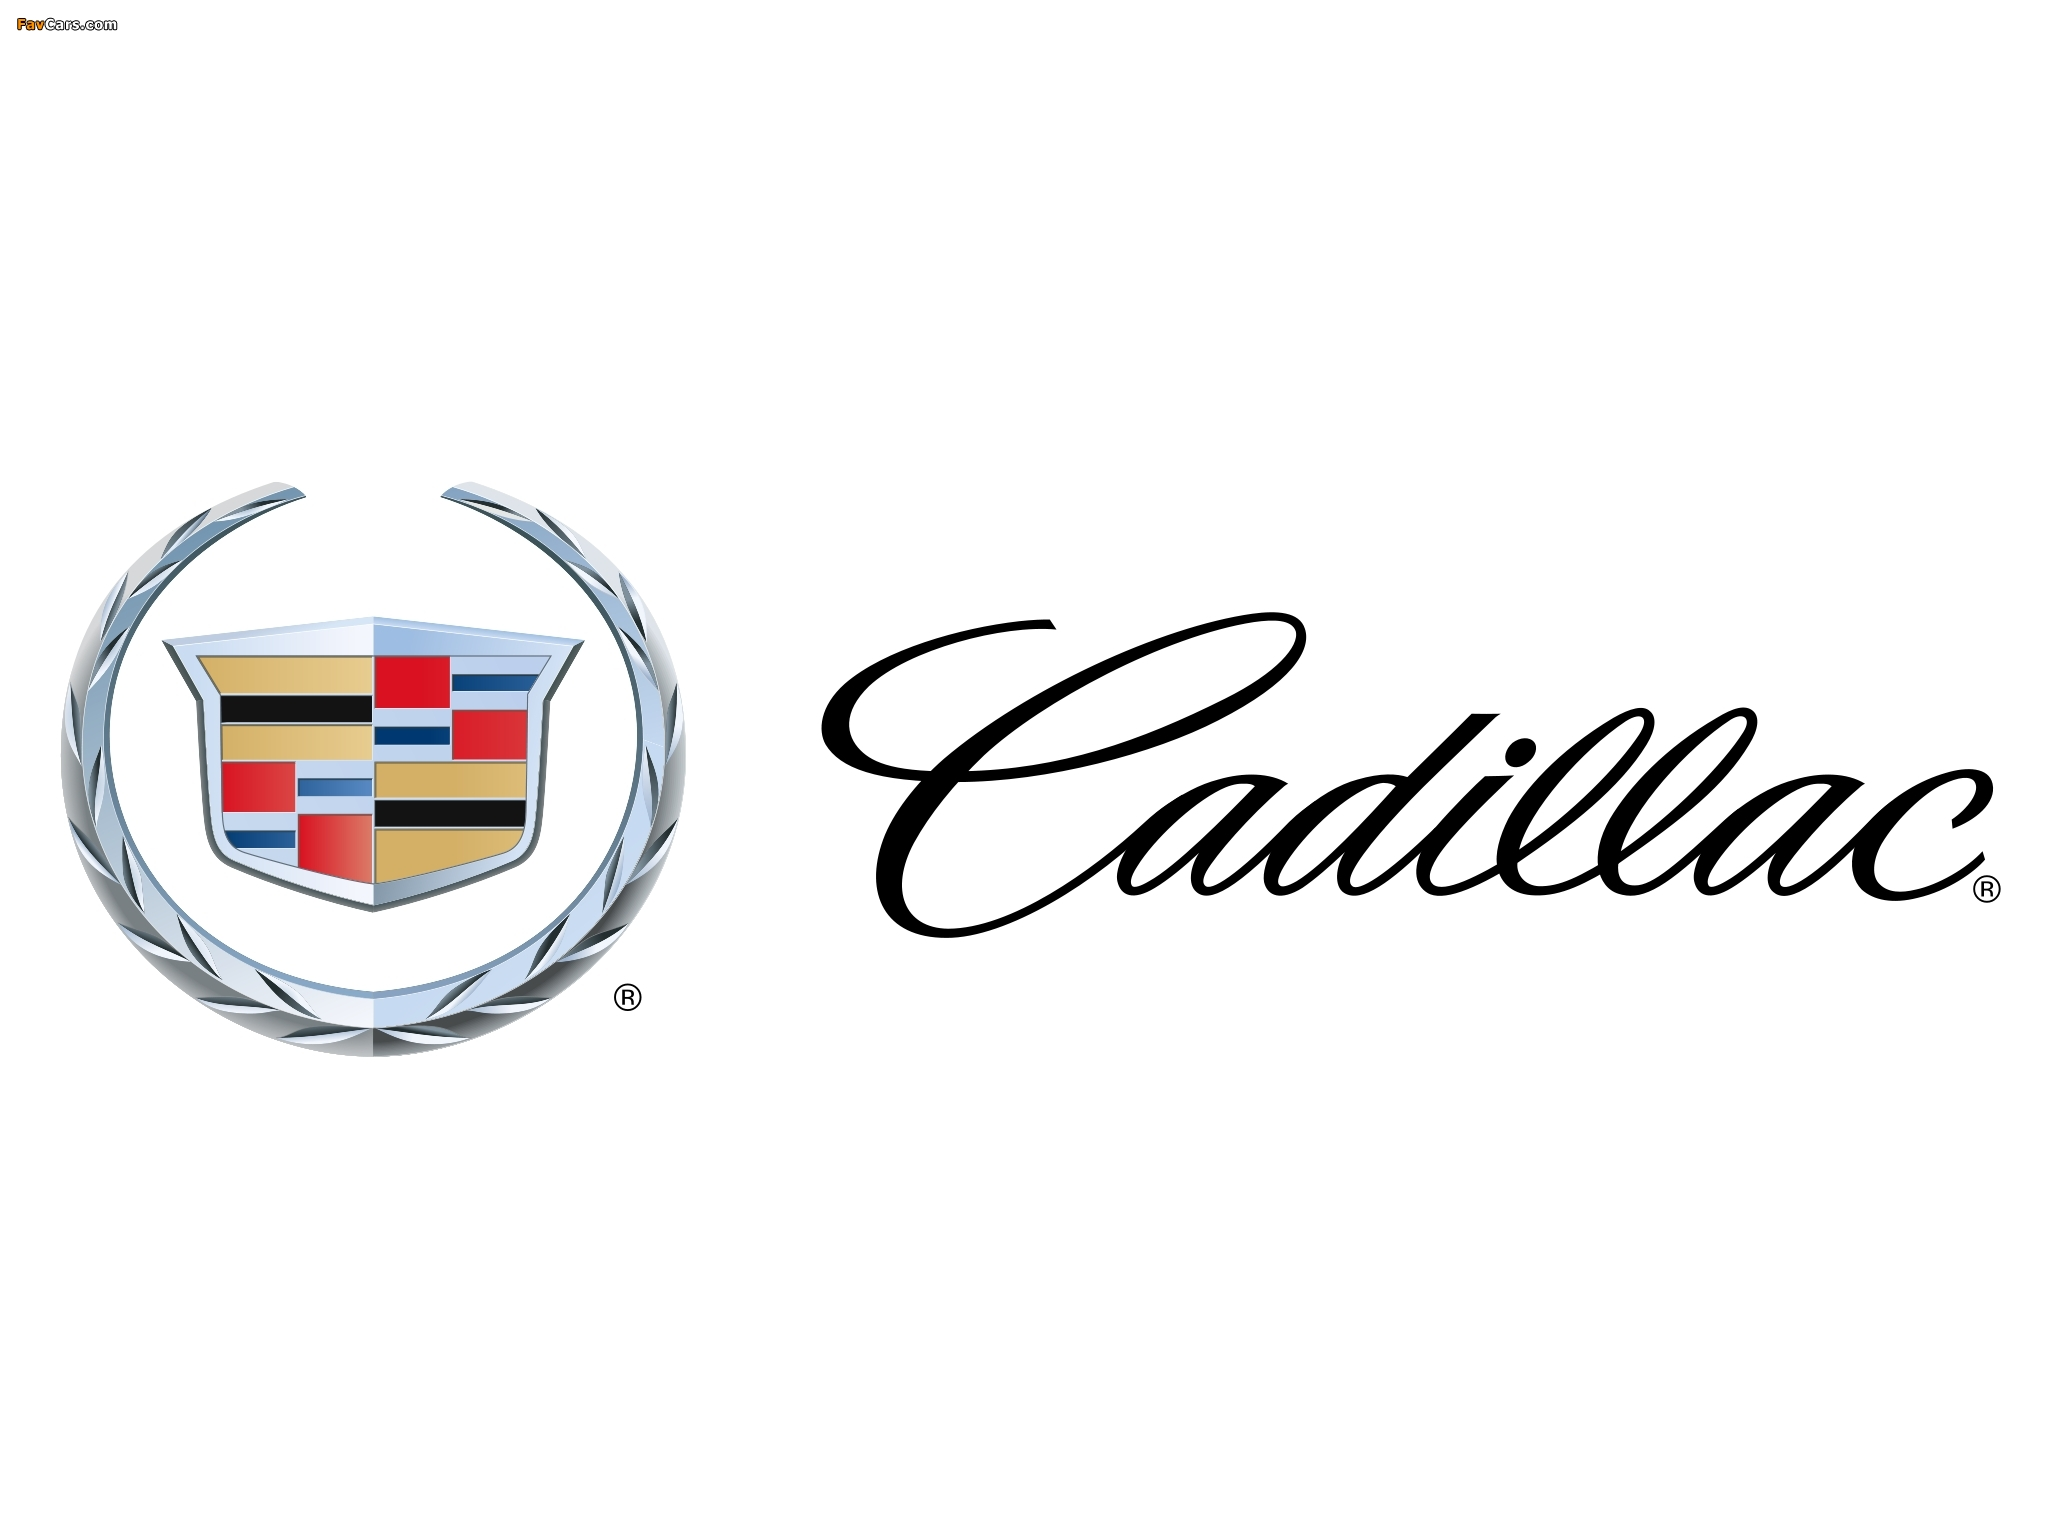 Cadillac 2002-10 wallpapers (2048 x 1536)